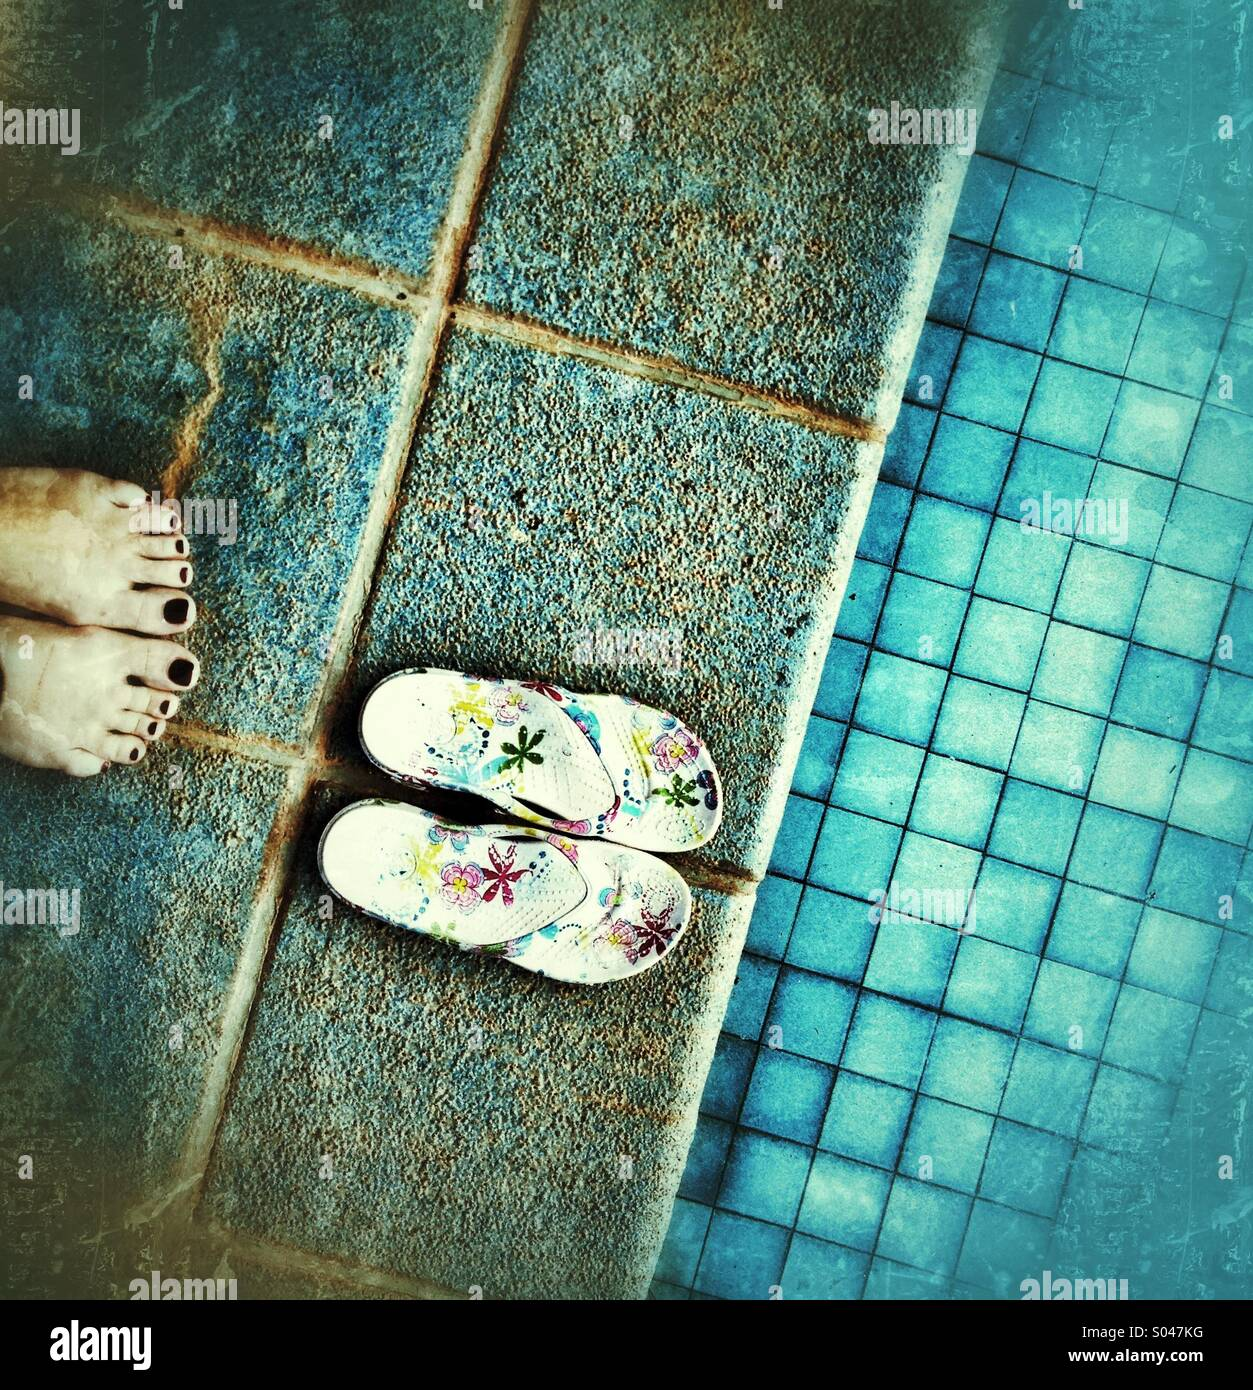 Feet and sandals - Stock Image